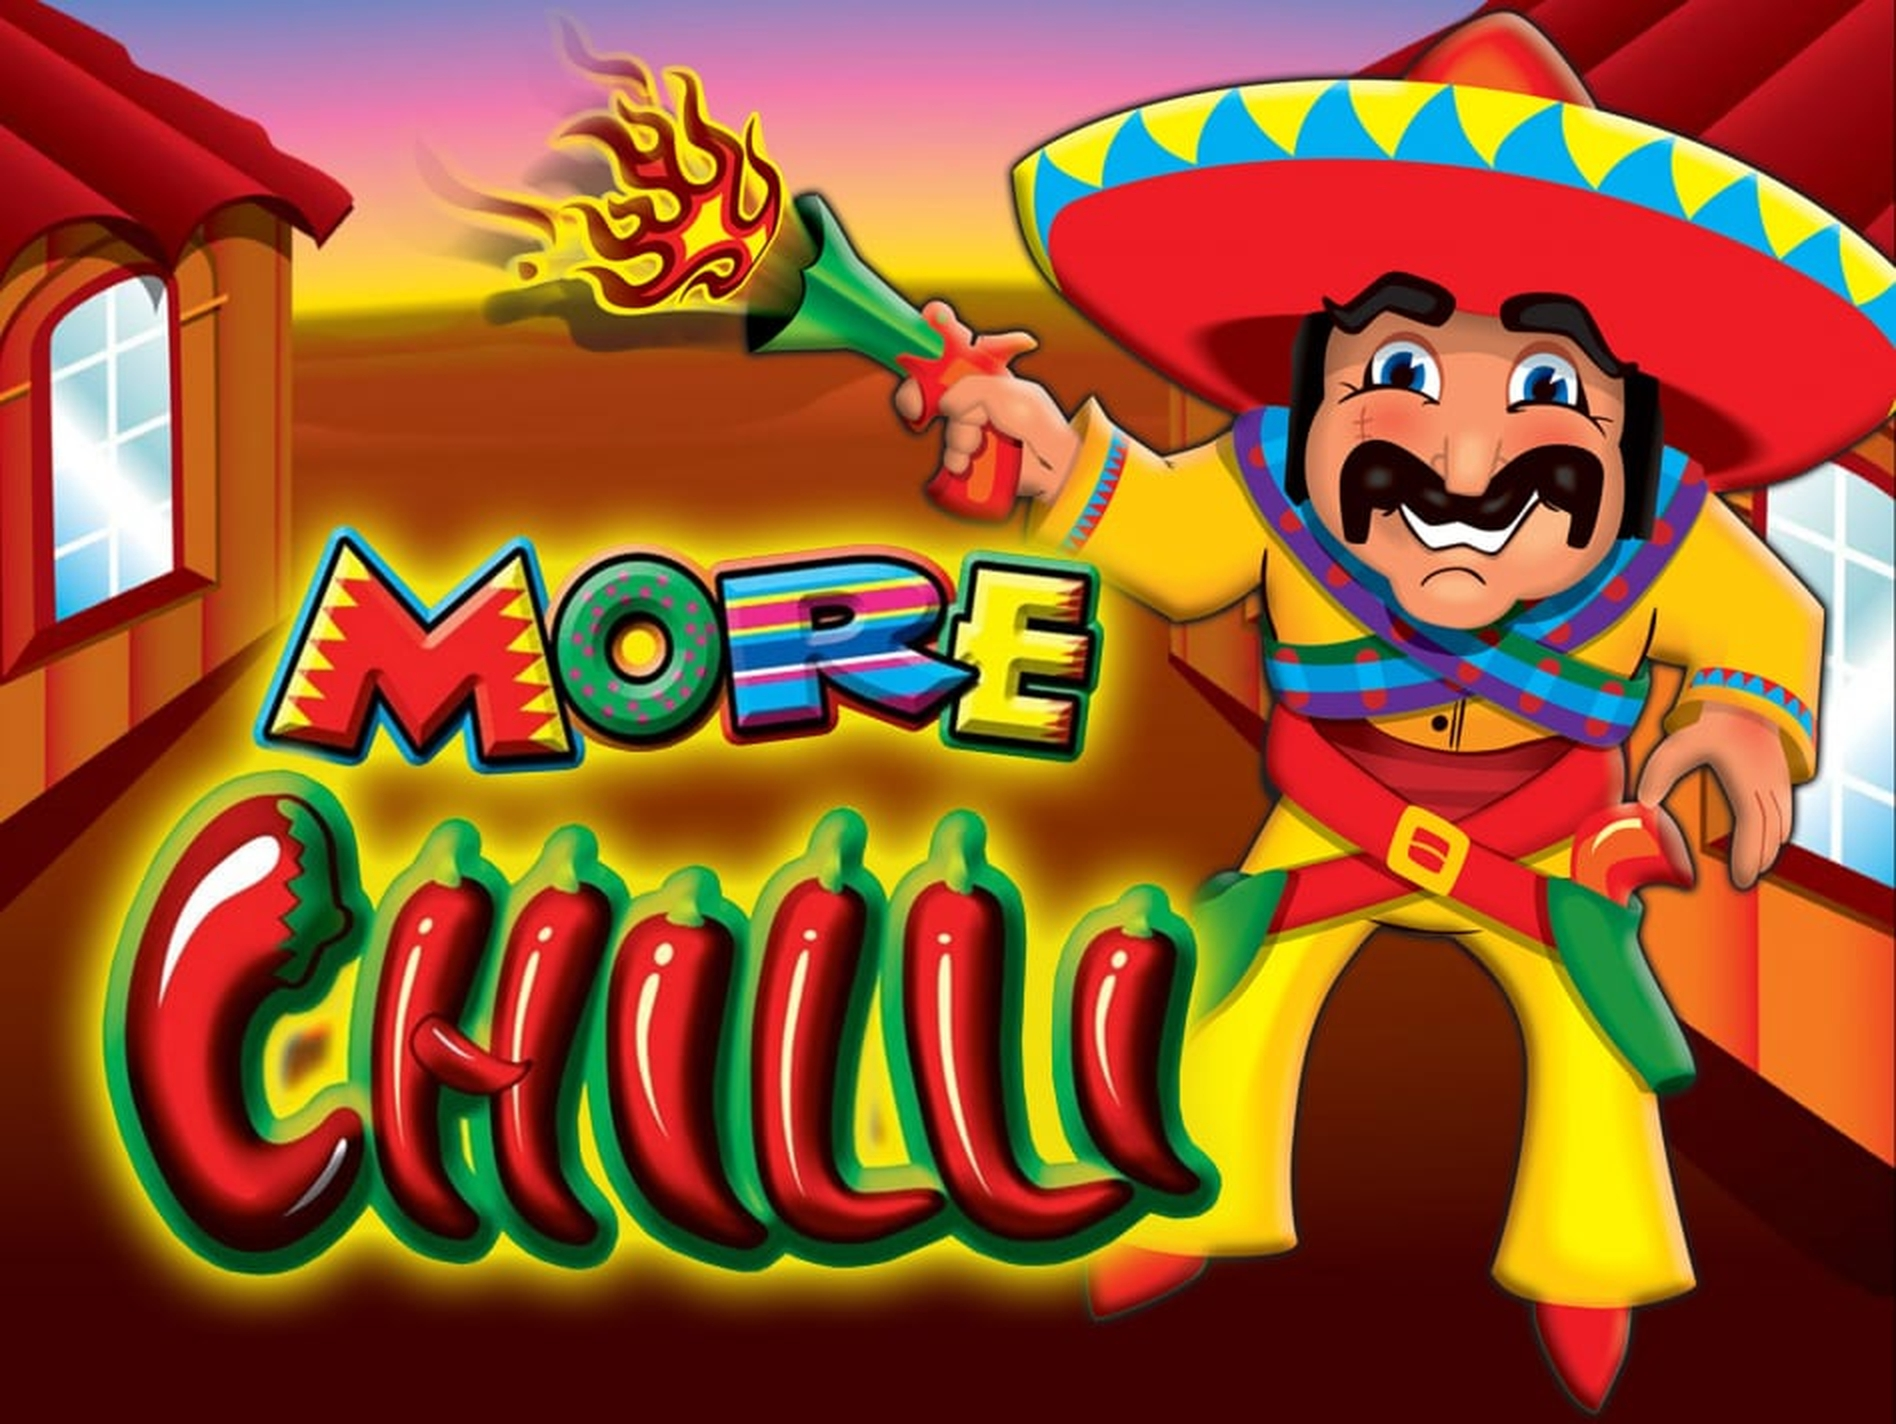 The More Chilli Online Slot Demo Game by Aristocrat